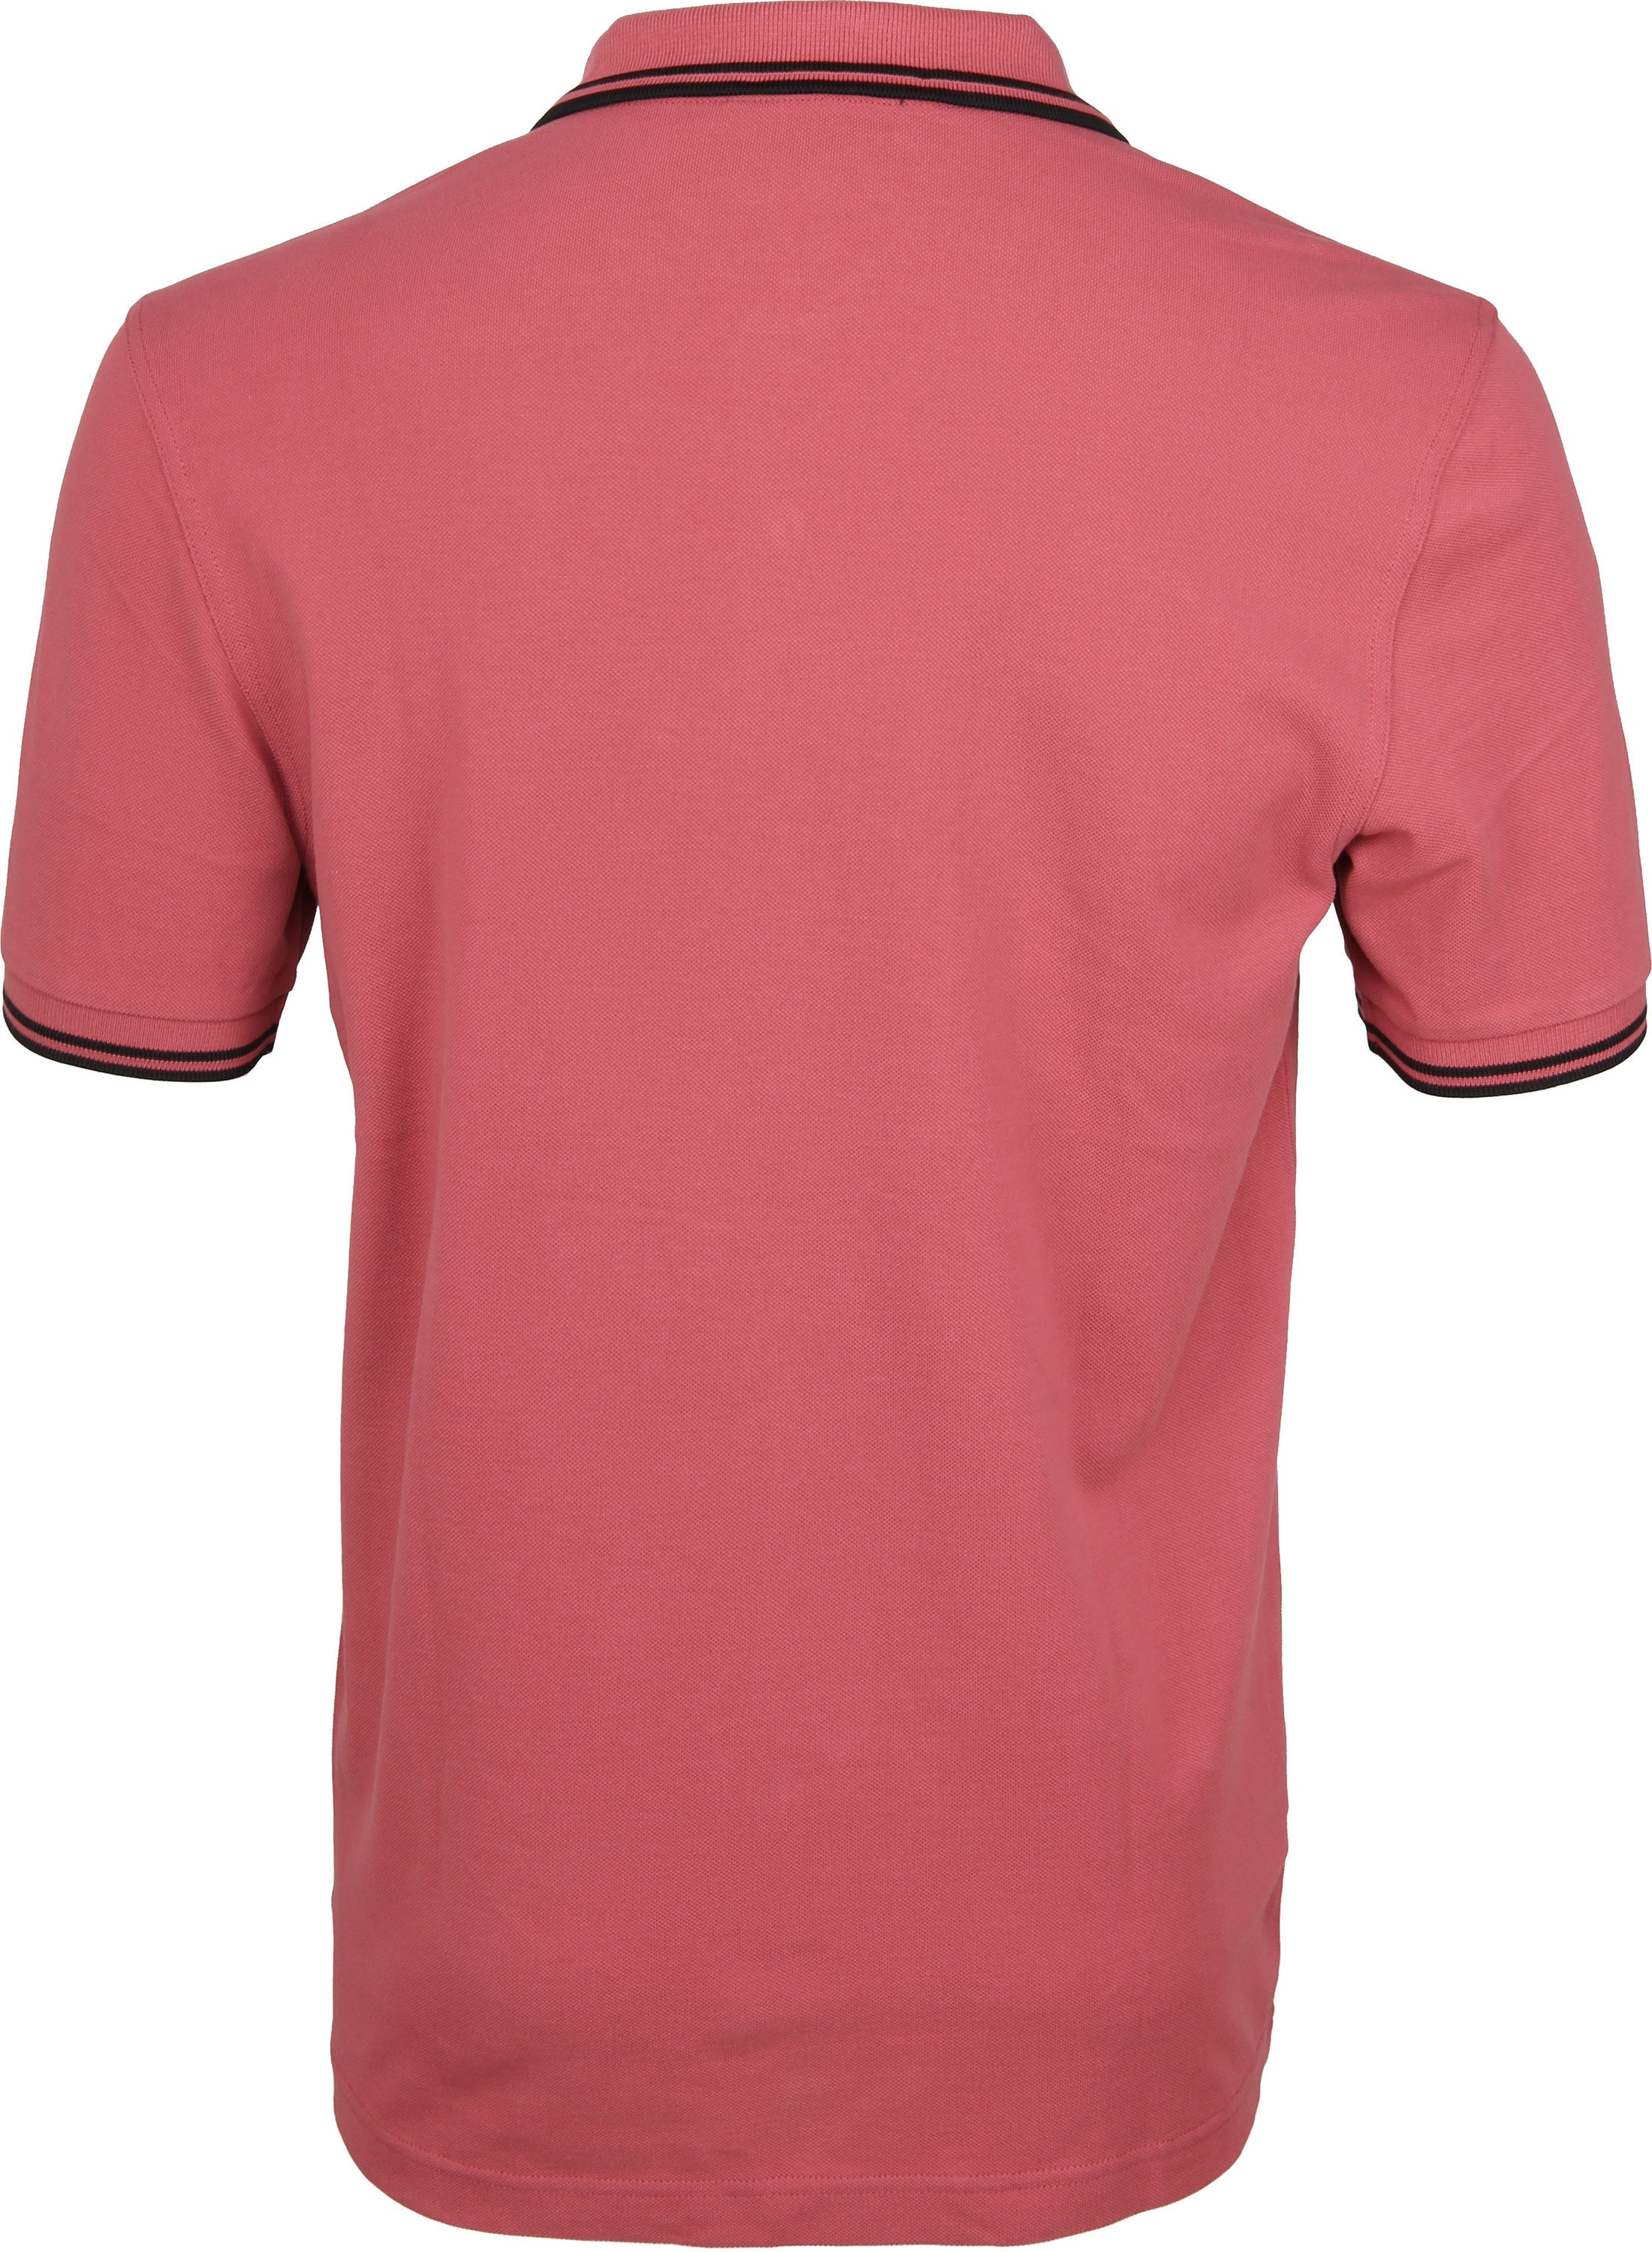 Fred Perry Poloshirt Pink I09 foto 2